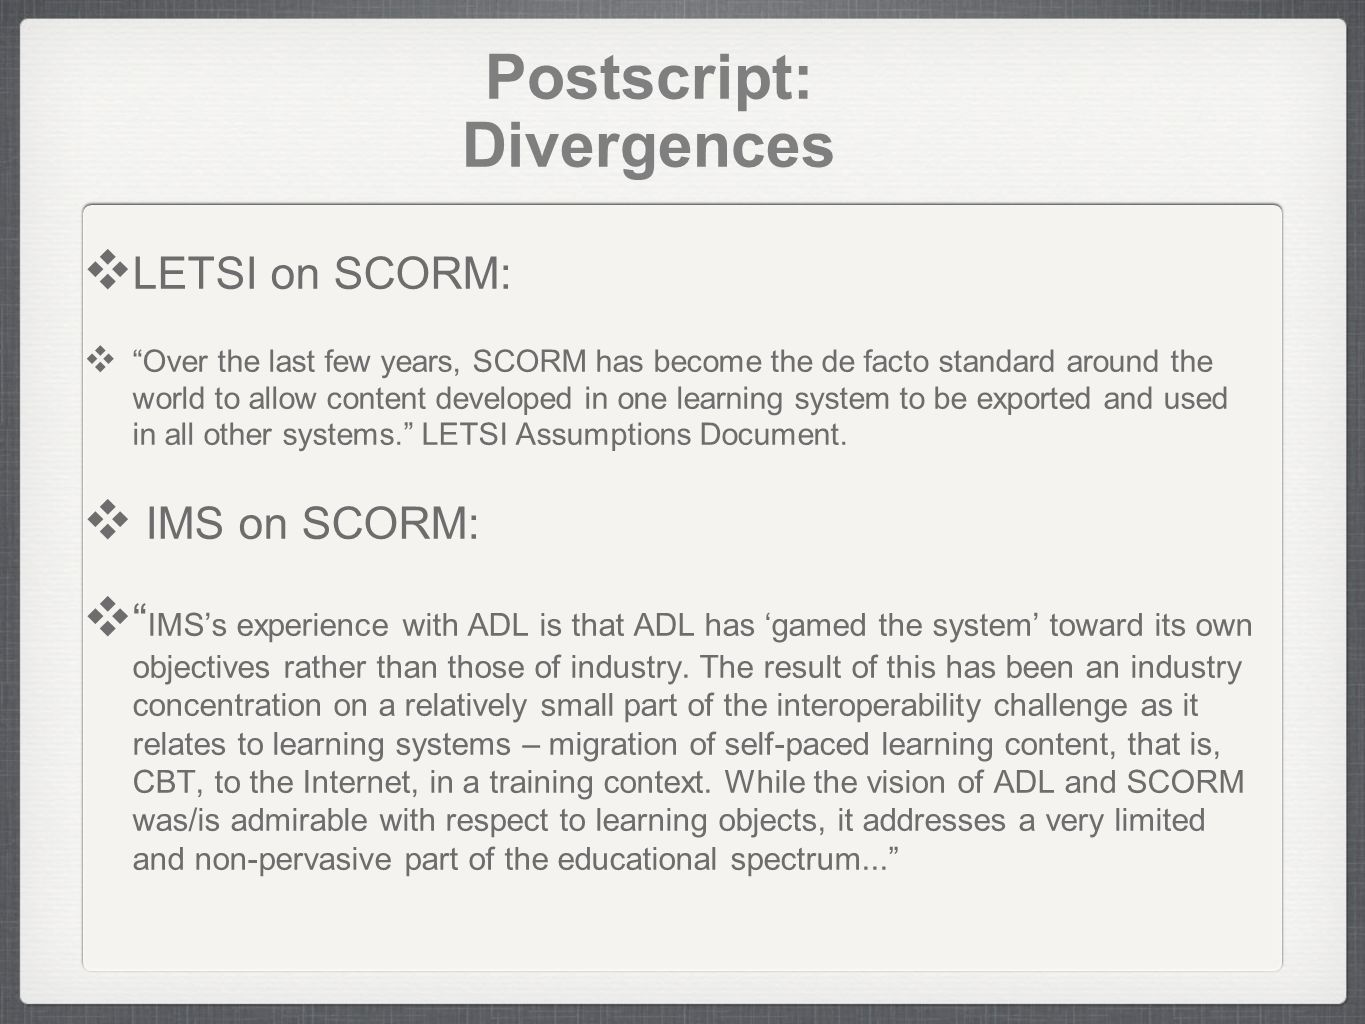 Postscript: Divergences LETSI on SCORM: Over the last few years, SCORM has become the de facto standard around the world to allow content developed in one learning system to be exported and used in all other systems.